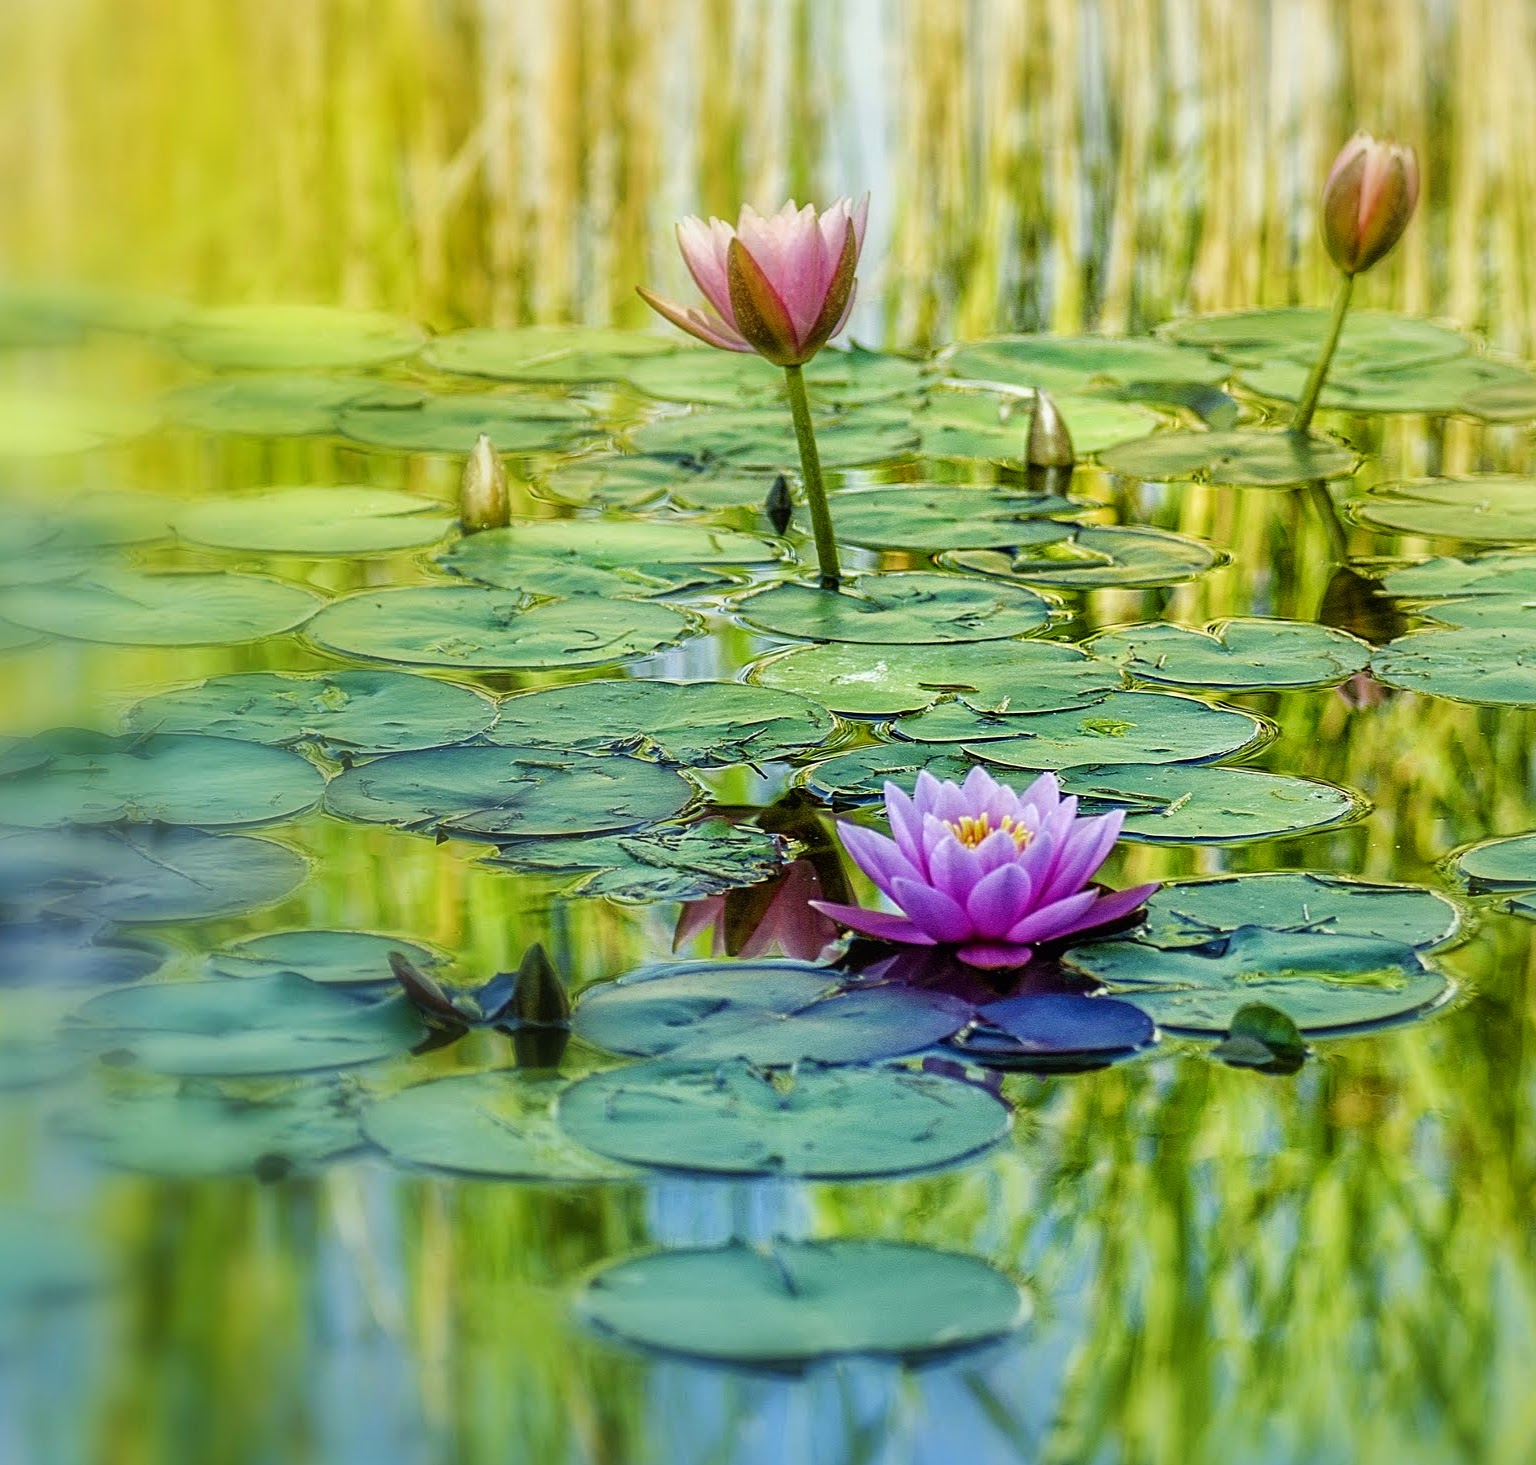 Water Lily: Lilypons' Water Lilies (5 Images)